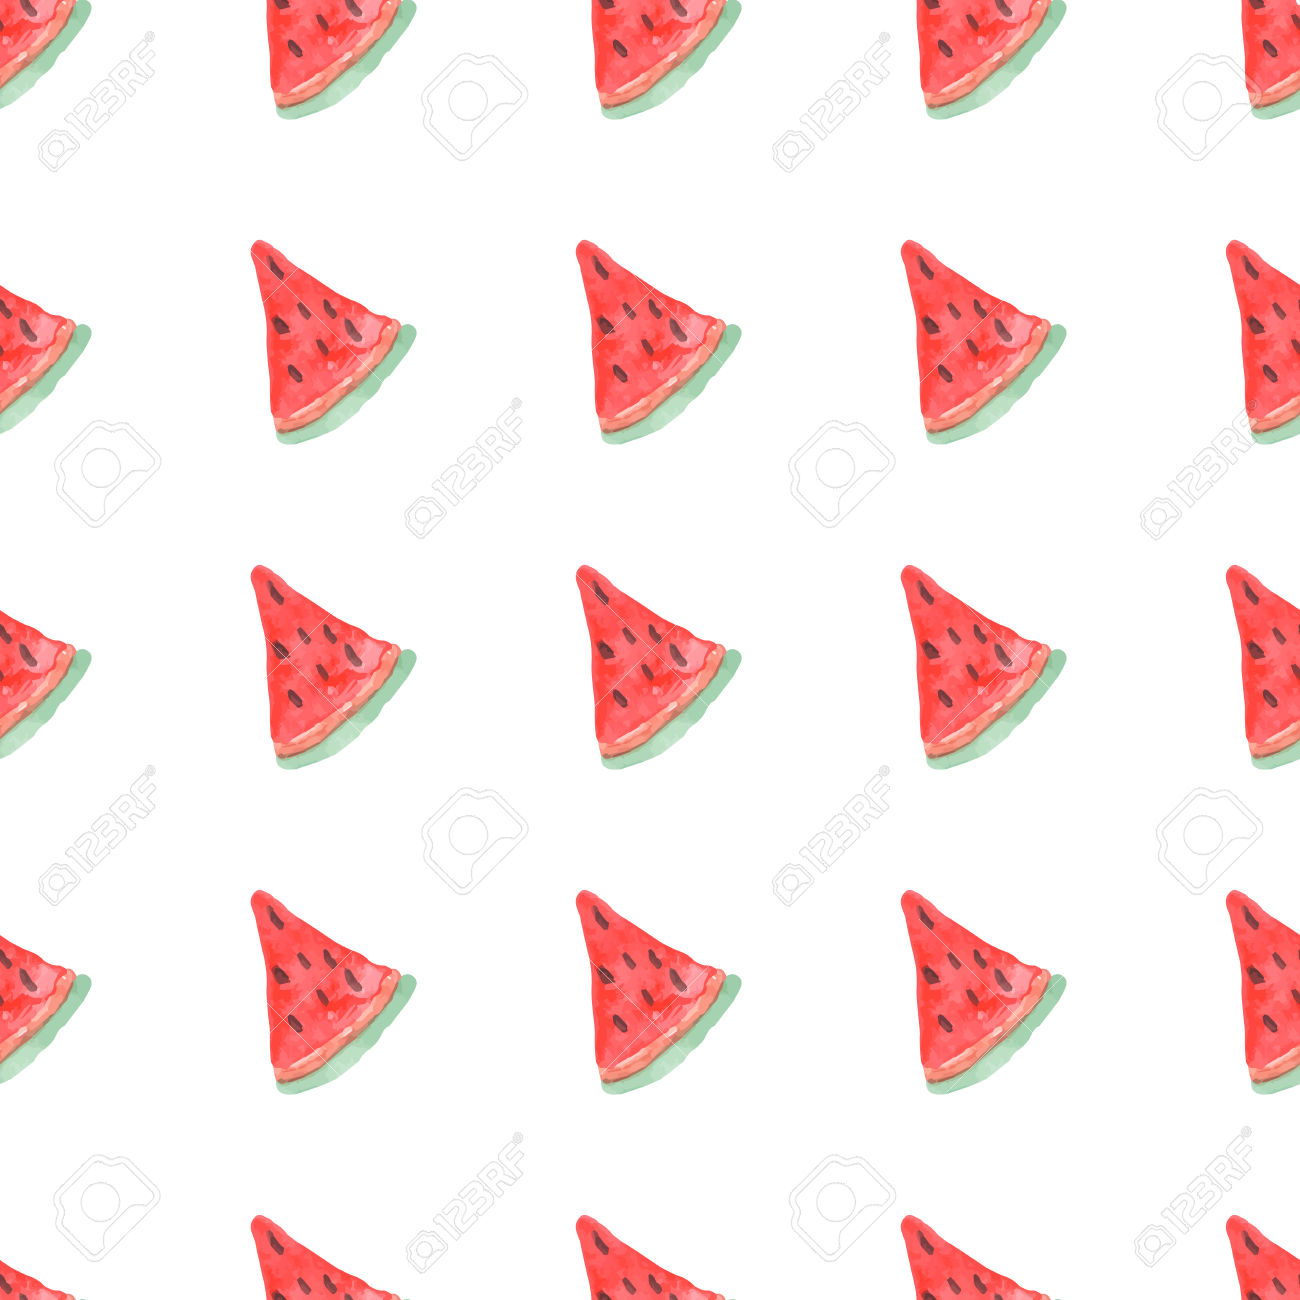 Seamless Natural Color Pattern Of Red Watermelon. Natural Seamless.